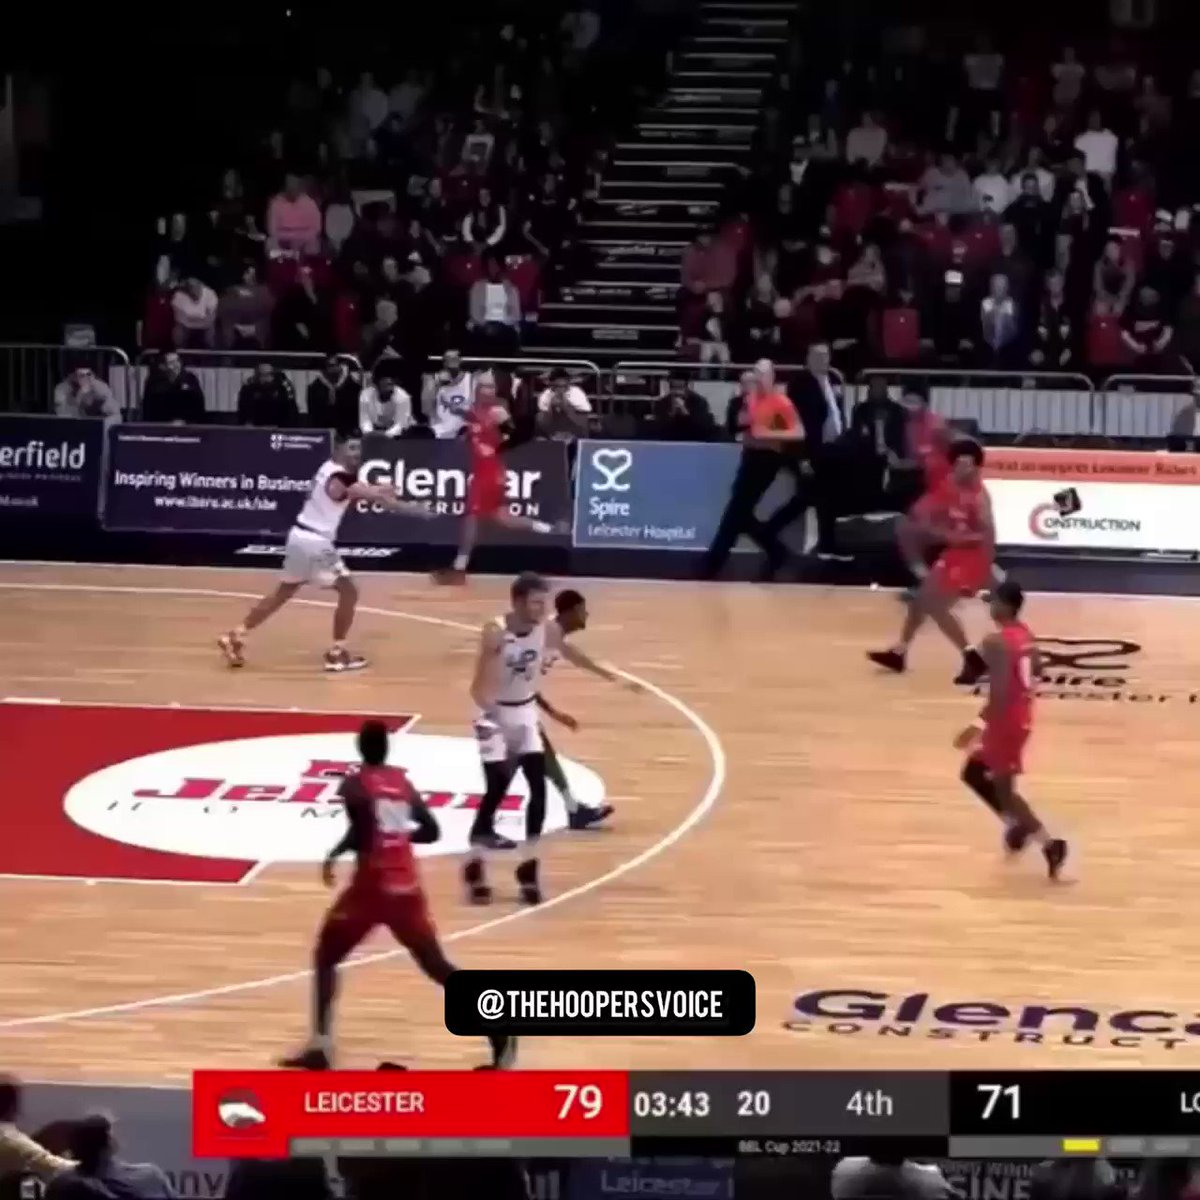 Zach Jackson (@Zach_Jackson15) got a 2for1 on bodies in this poster against London 😤🤯🔥 #TheHoopersVoice #VideoGameNice #BritishBasketball   Follow @thehoopersvoice for more hoops content! 📲🏀🔥